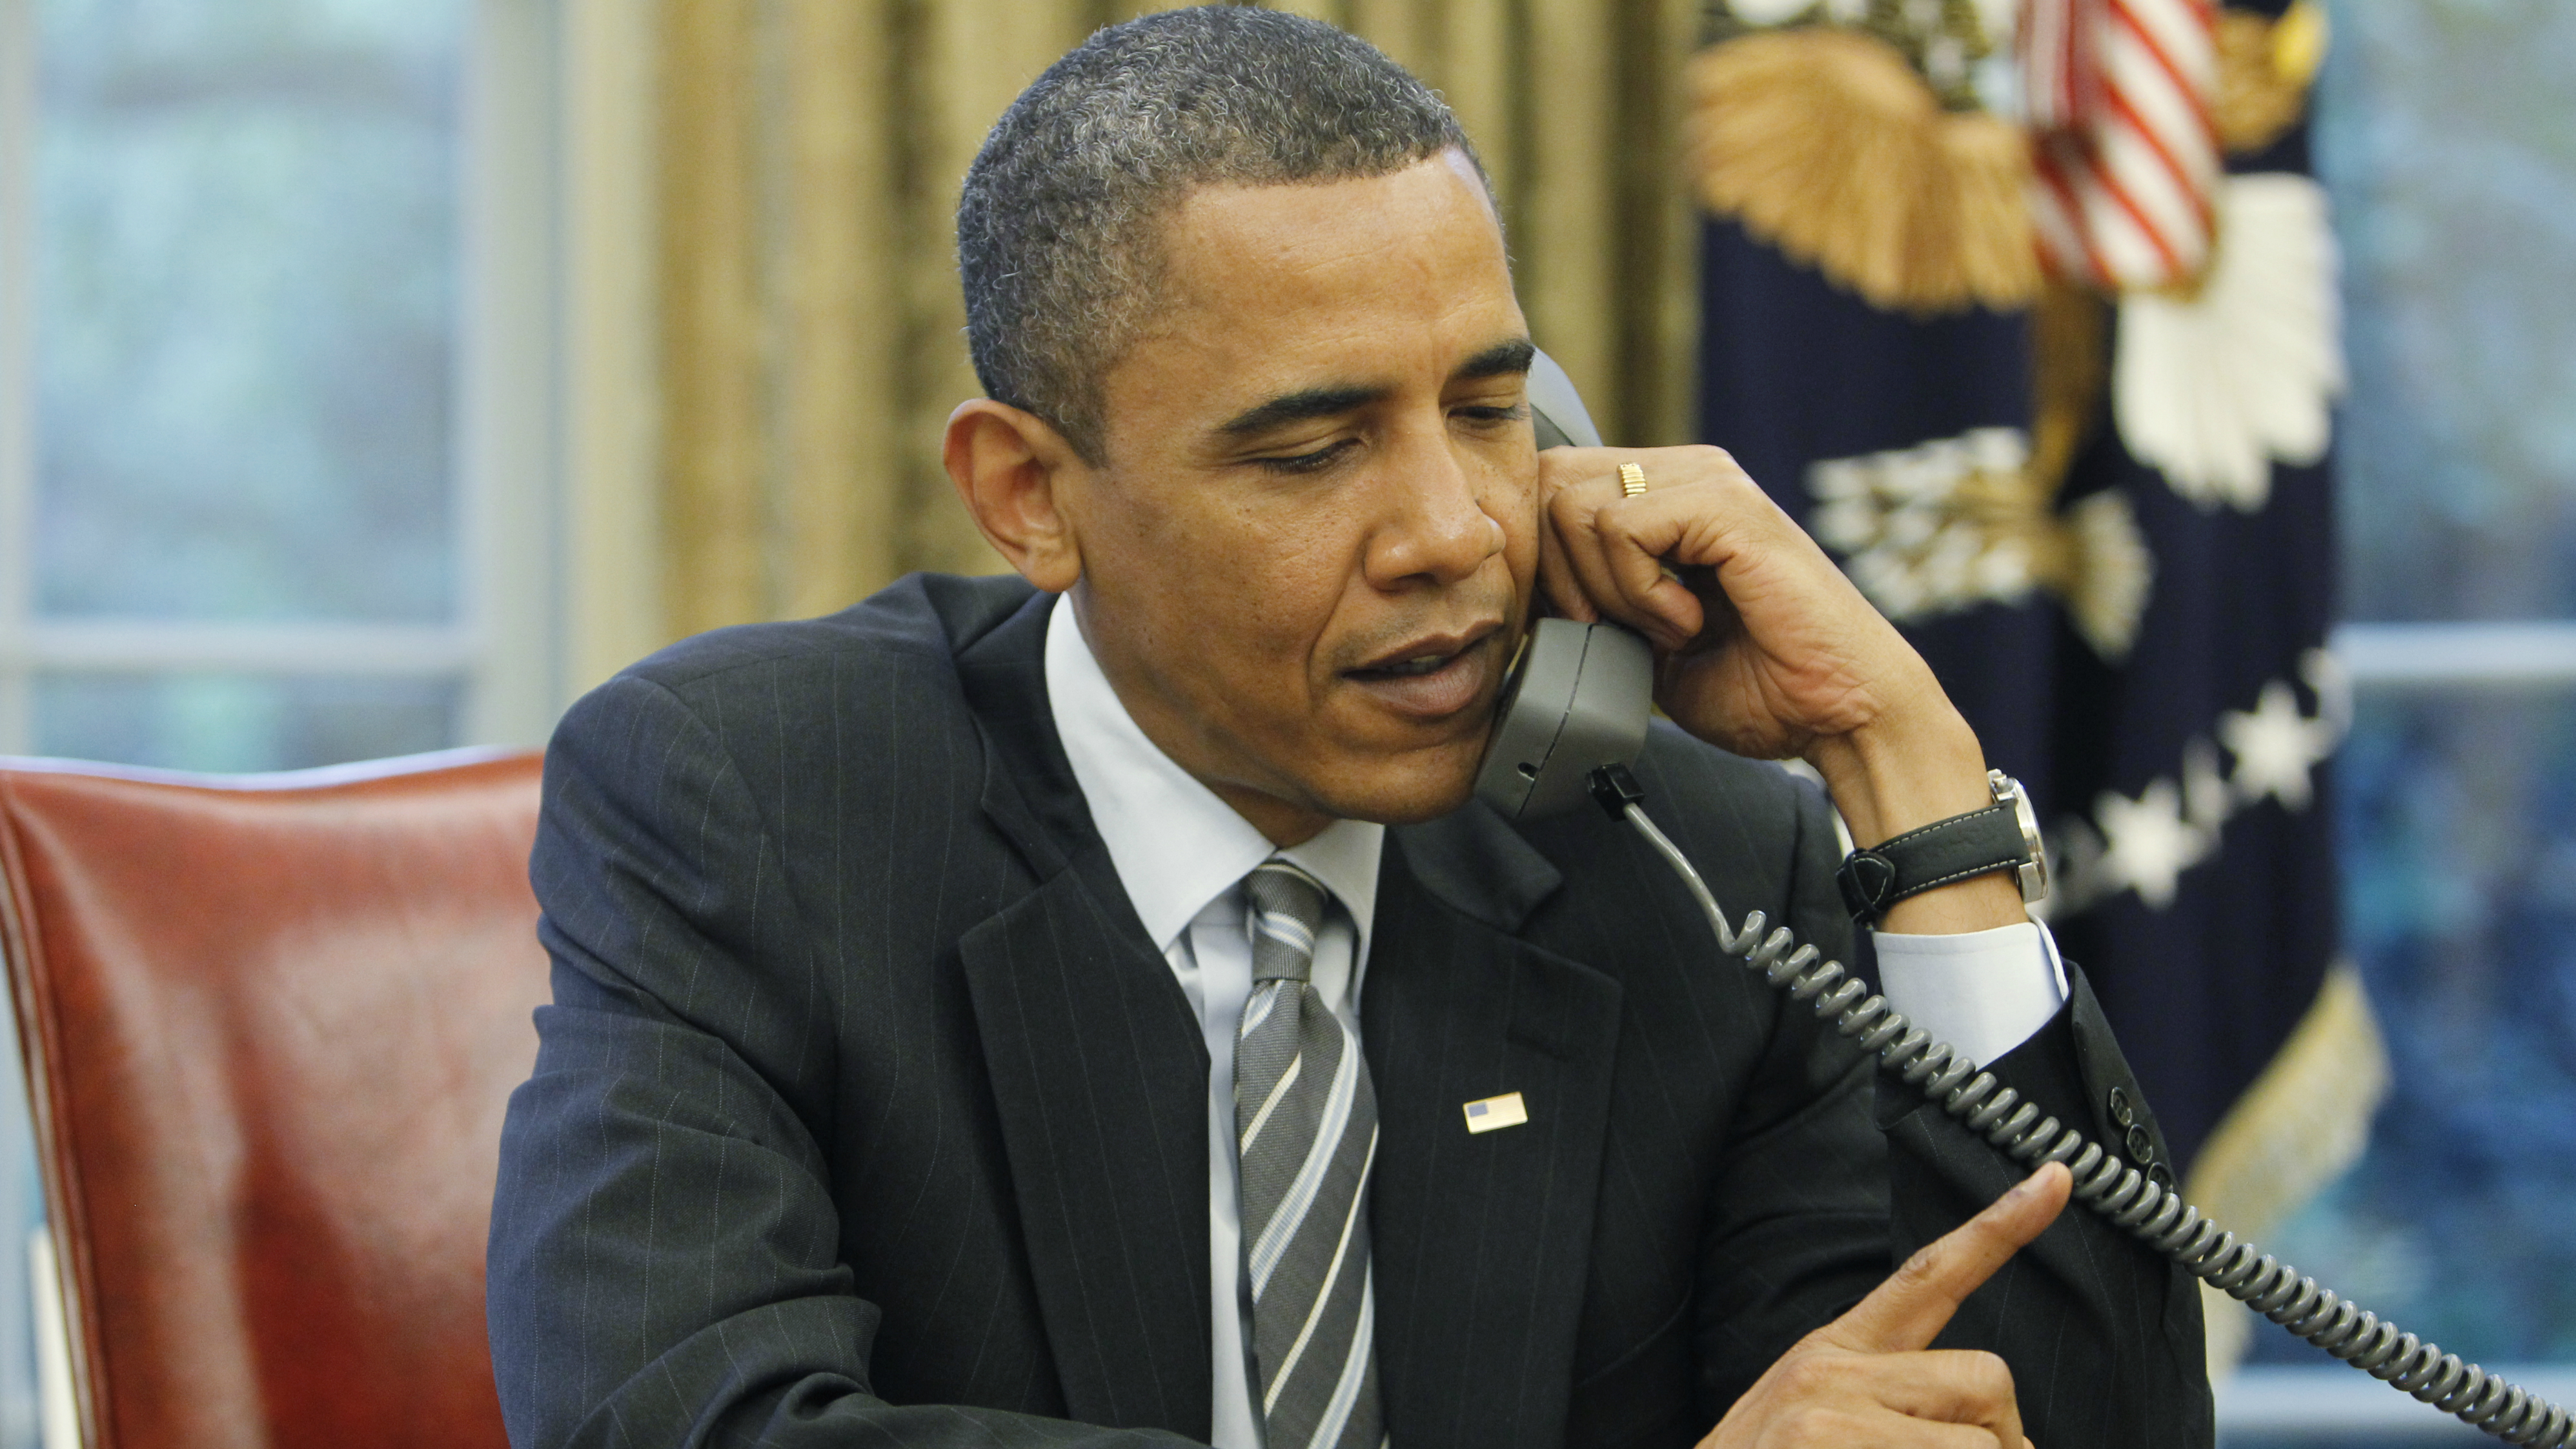 obama-phone-oval-office